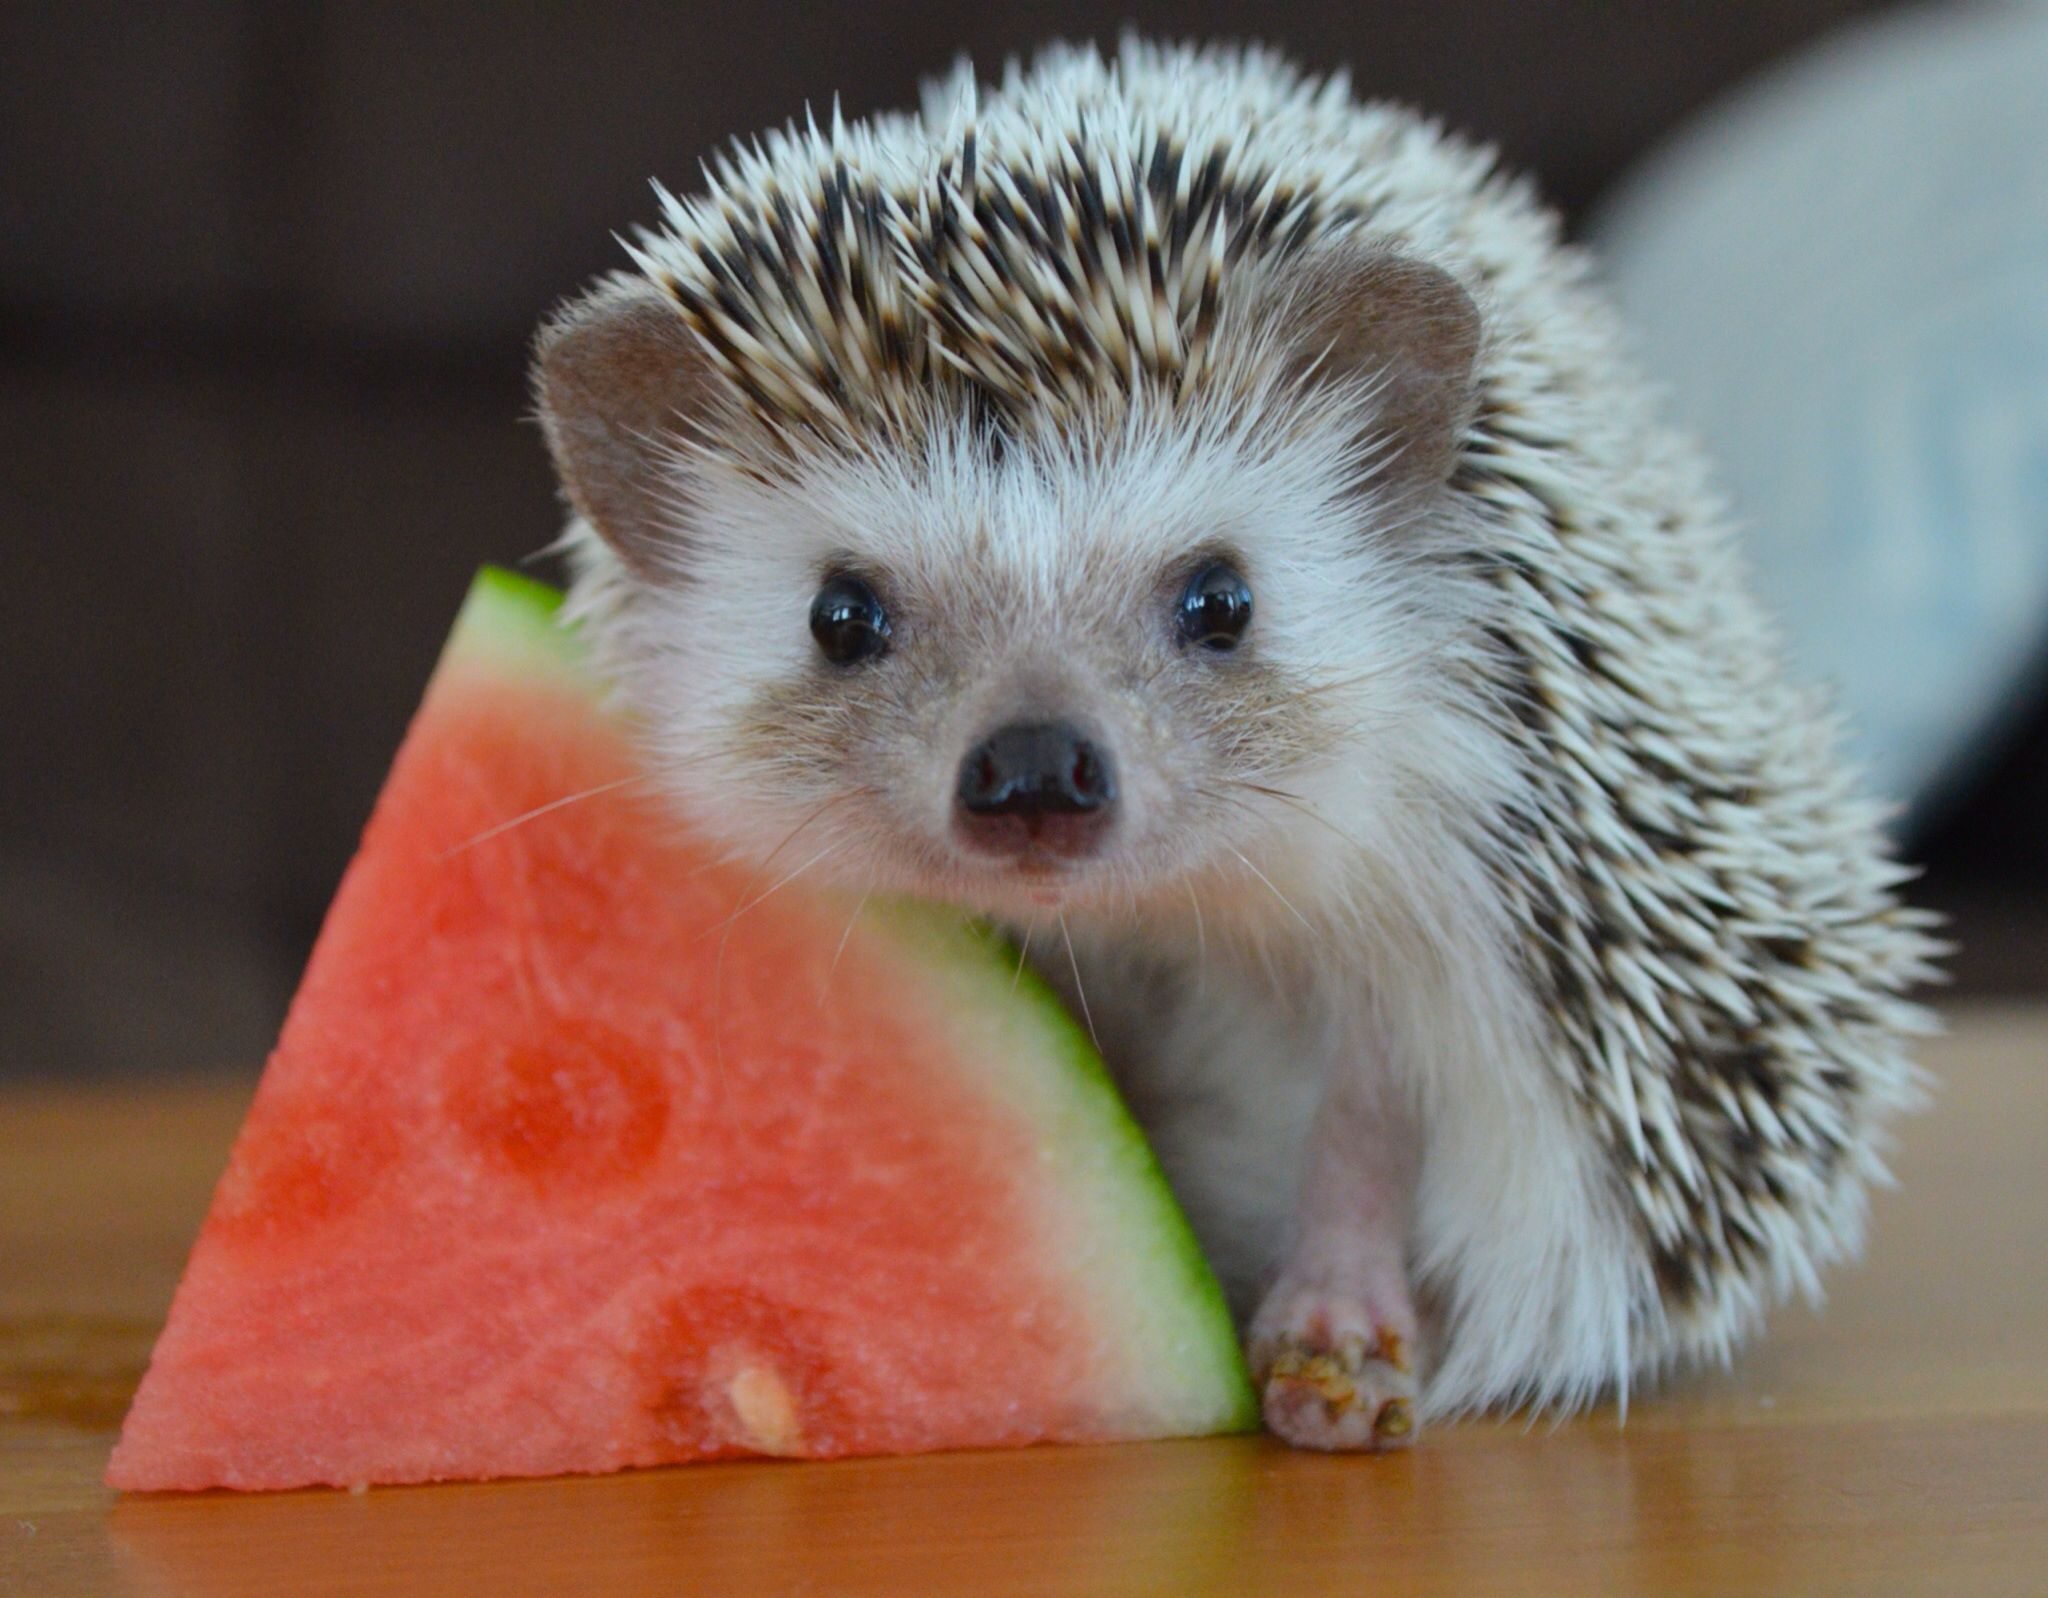 Definitely An Opportunistic Eater Hedgehogs Is One Of The Most Interesting Pets Nowadays But How Much Do You Tak Hedgehog Pet Cute Animals Animals Beautiful